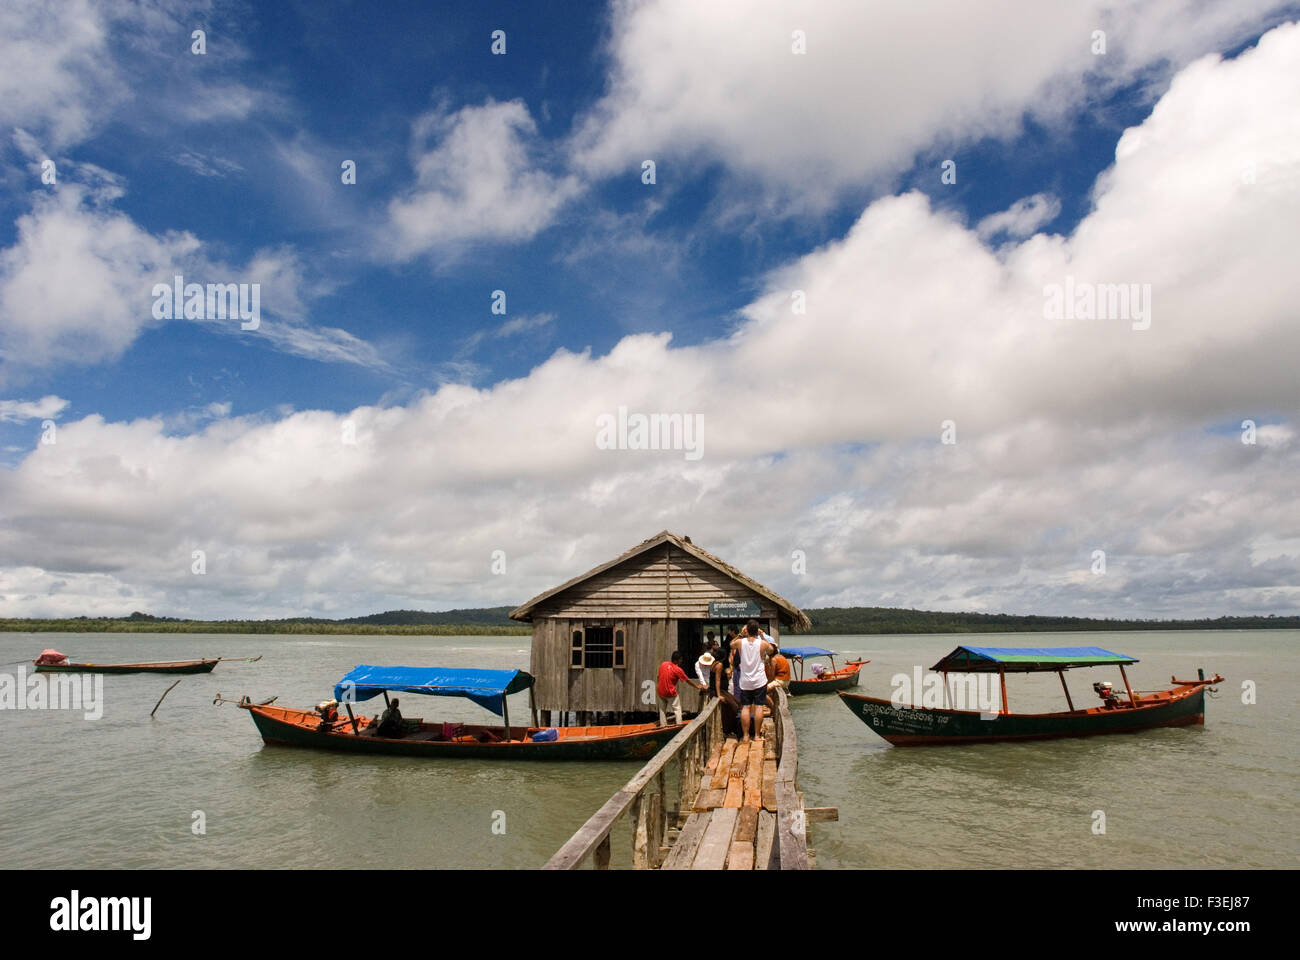 Hut in the Ream National Park. Ream National Park is a pristine maritime park just outside Sihanoukville. Notable - Stock Image